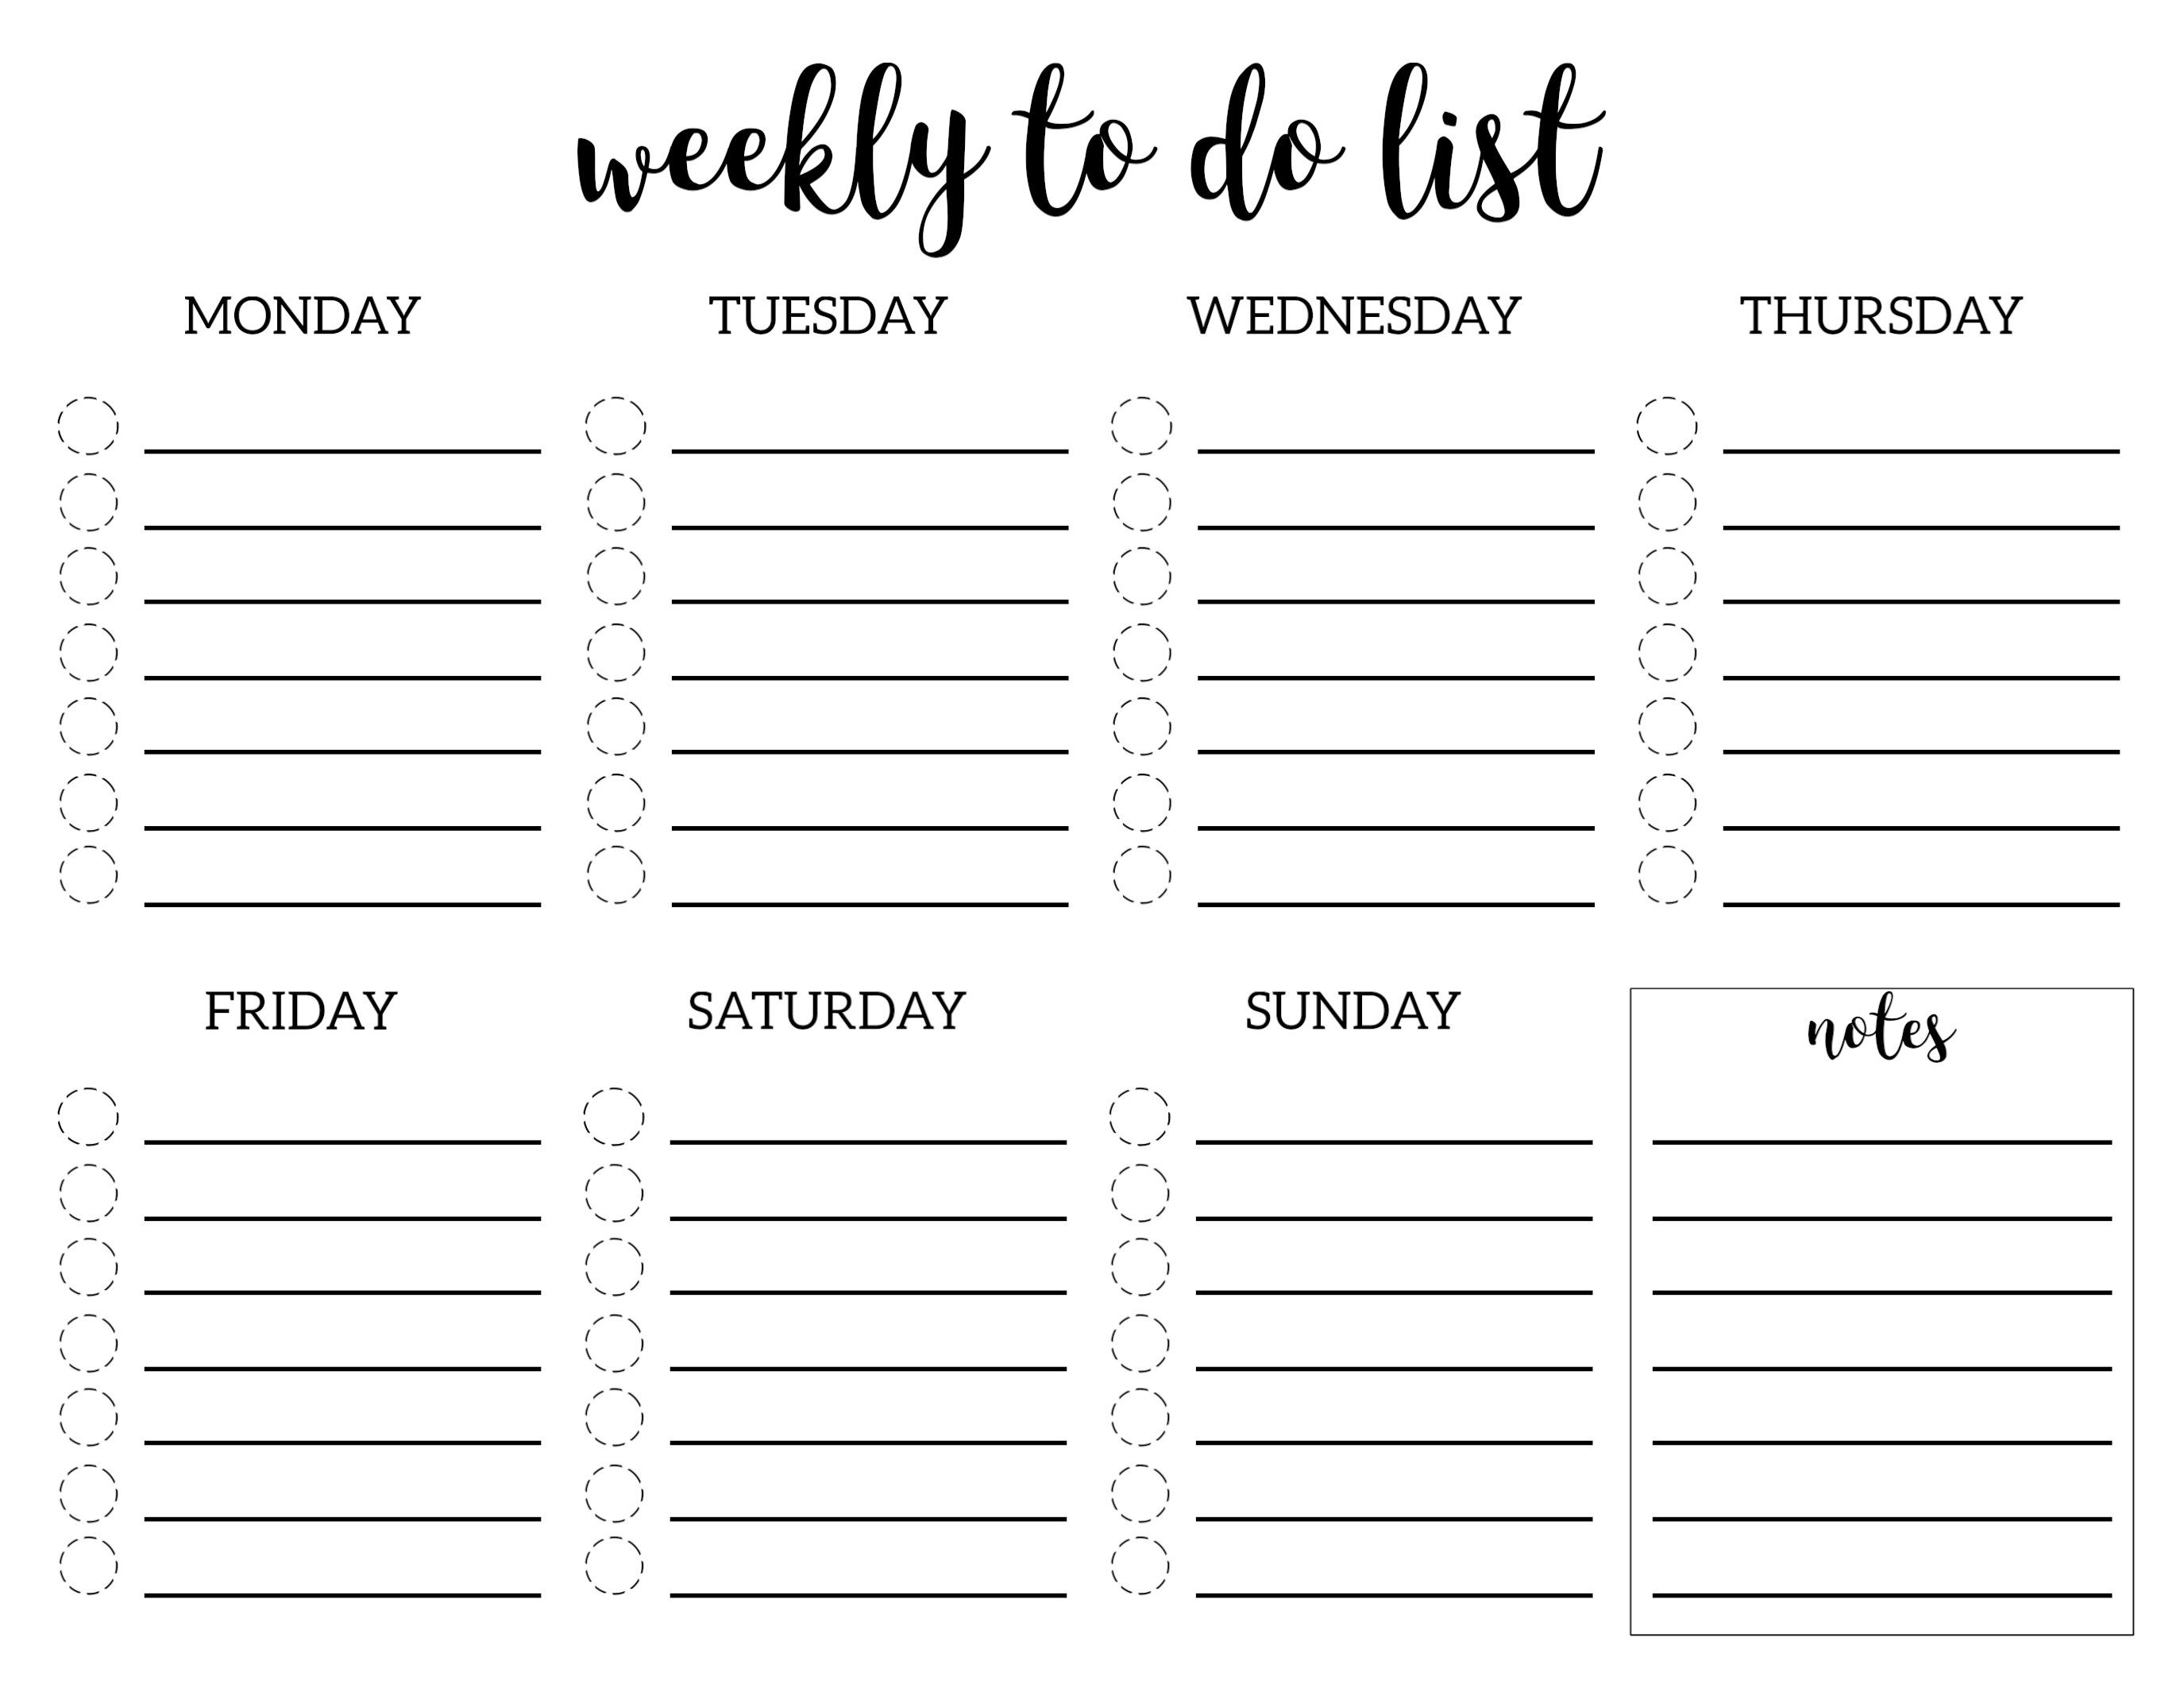 Weekly To Do List Printable Checklist Template To Do Lists